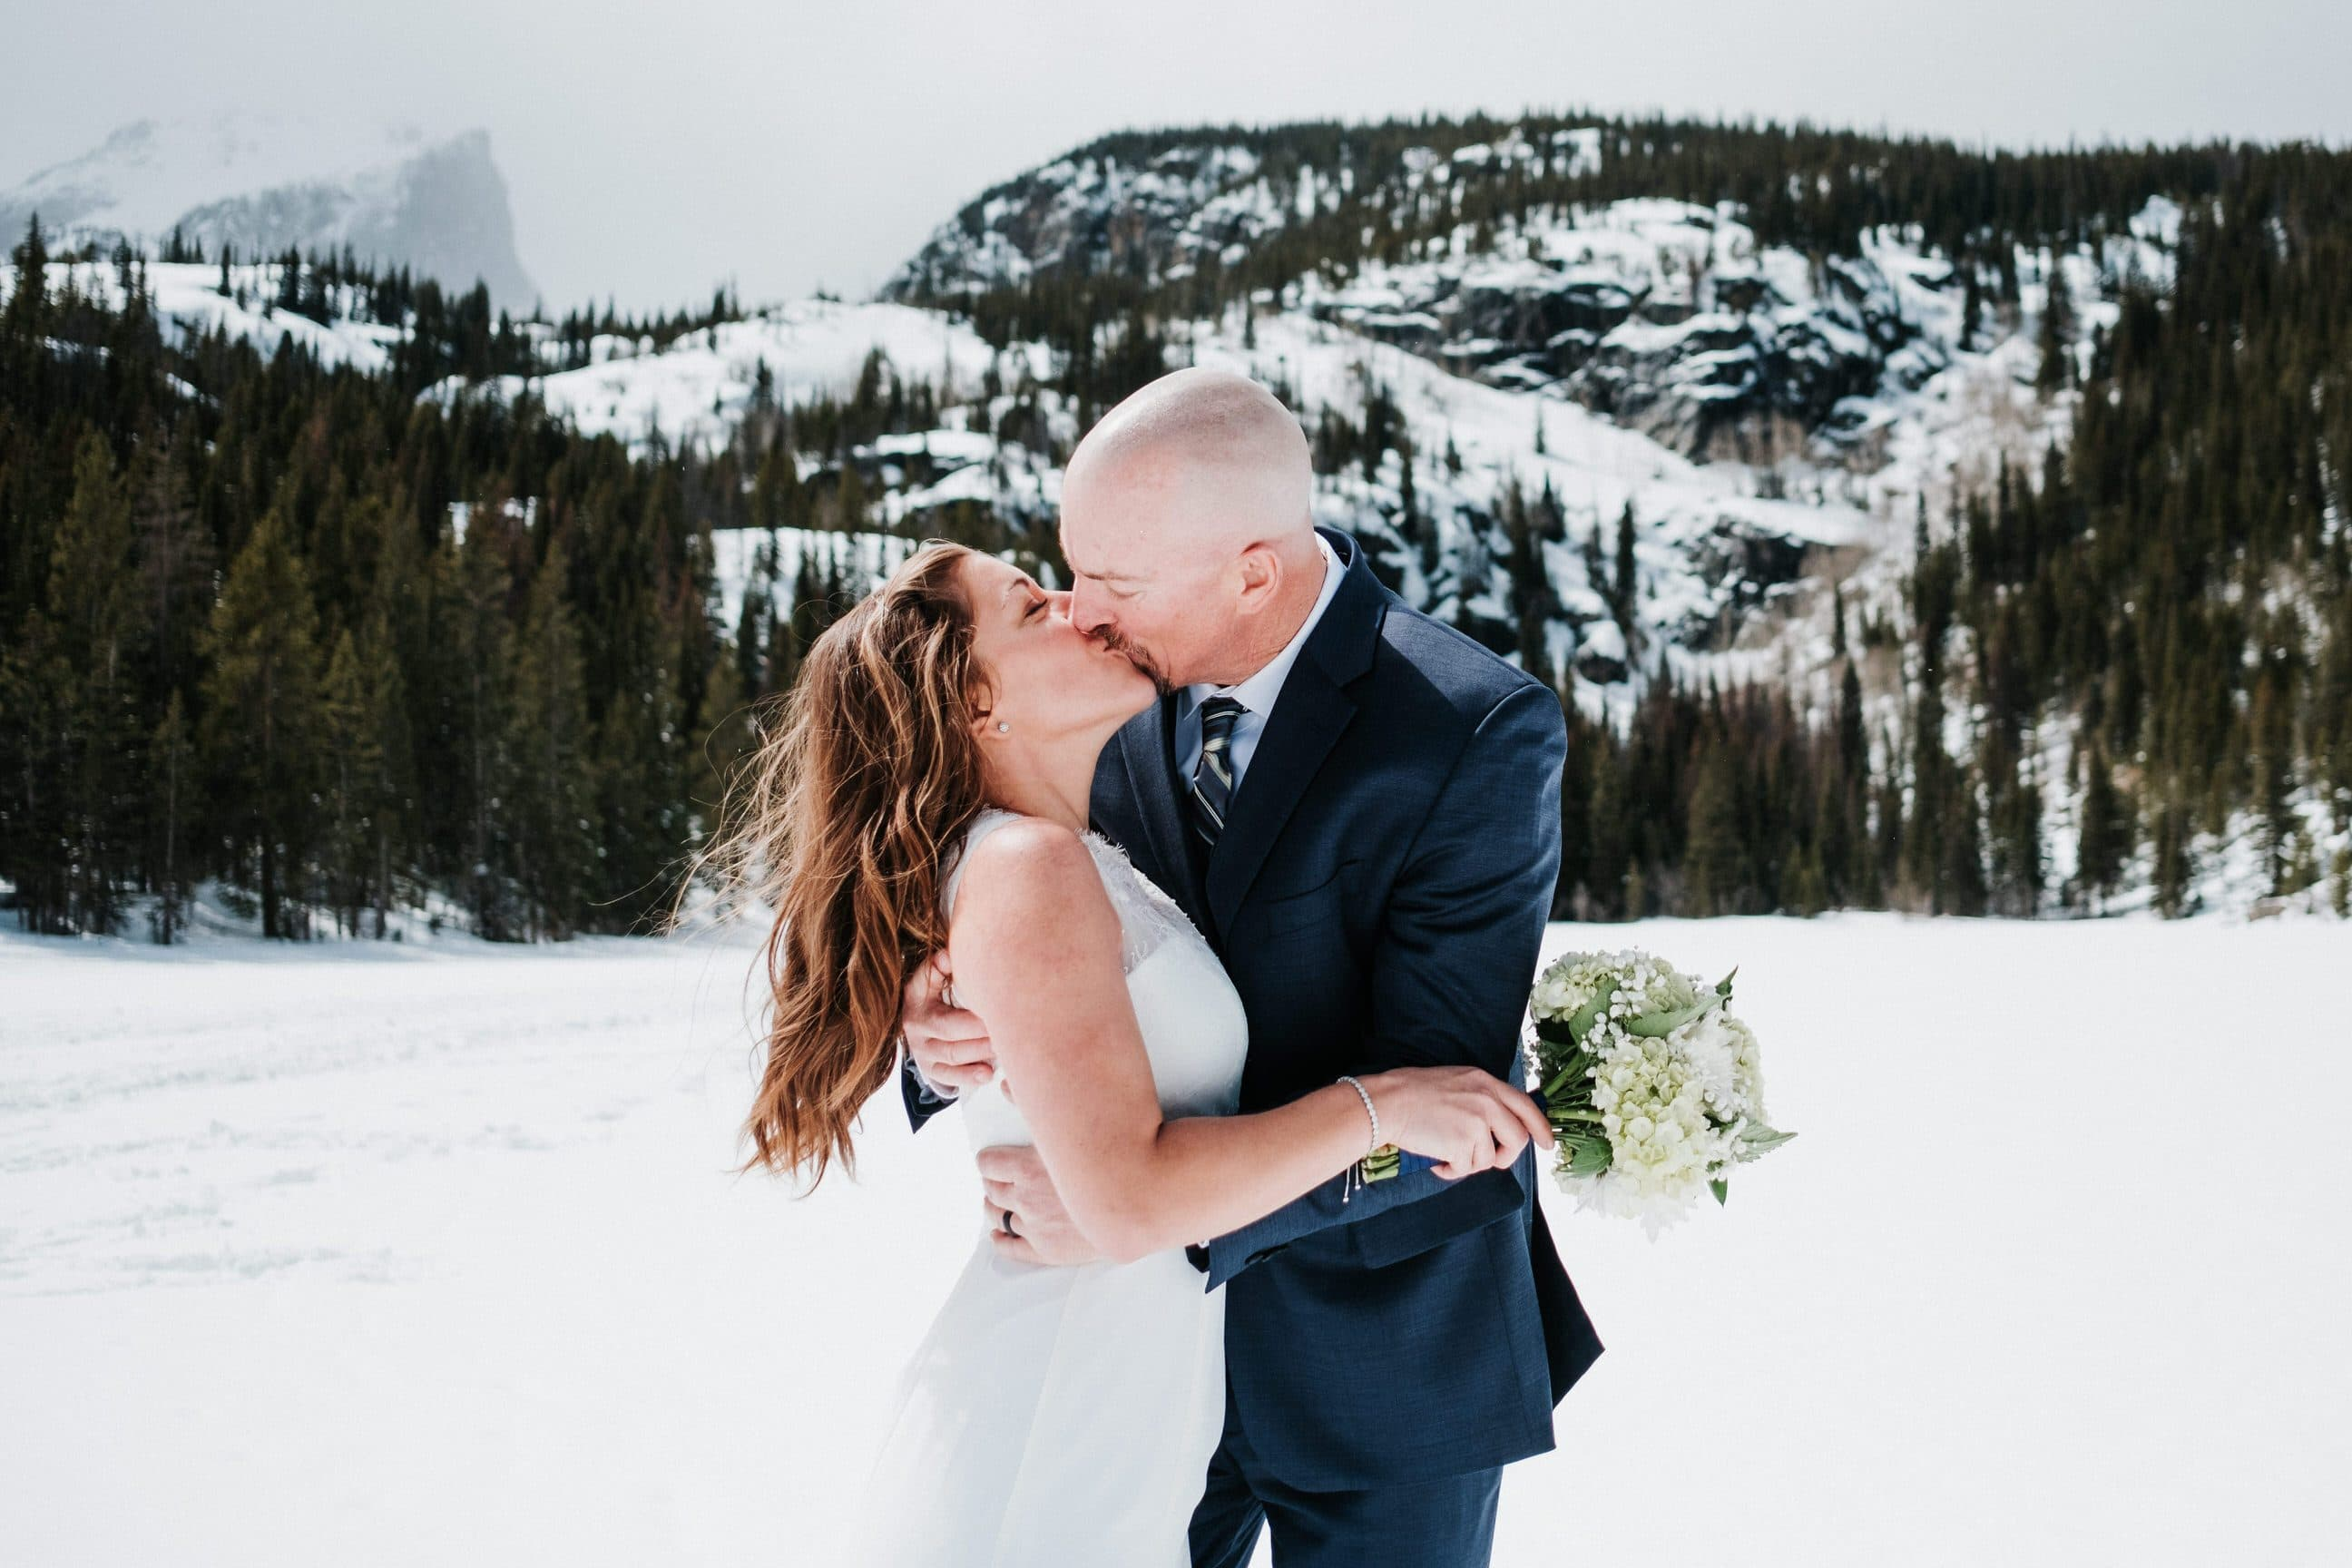 Sprague Lake hiking elopement, Rocky Mountain National Park Bear Lake winter hiking adventure elopement photography, Estes Park wedding photographer